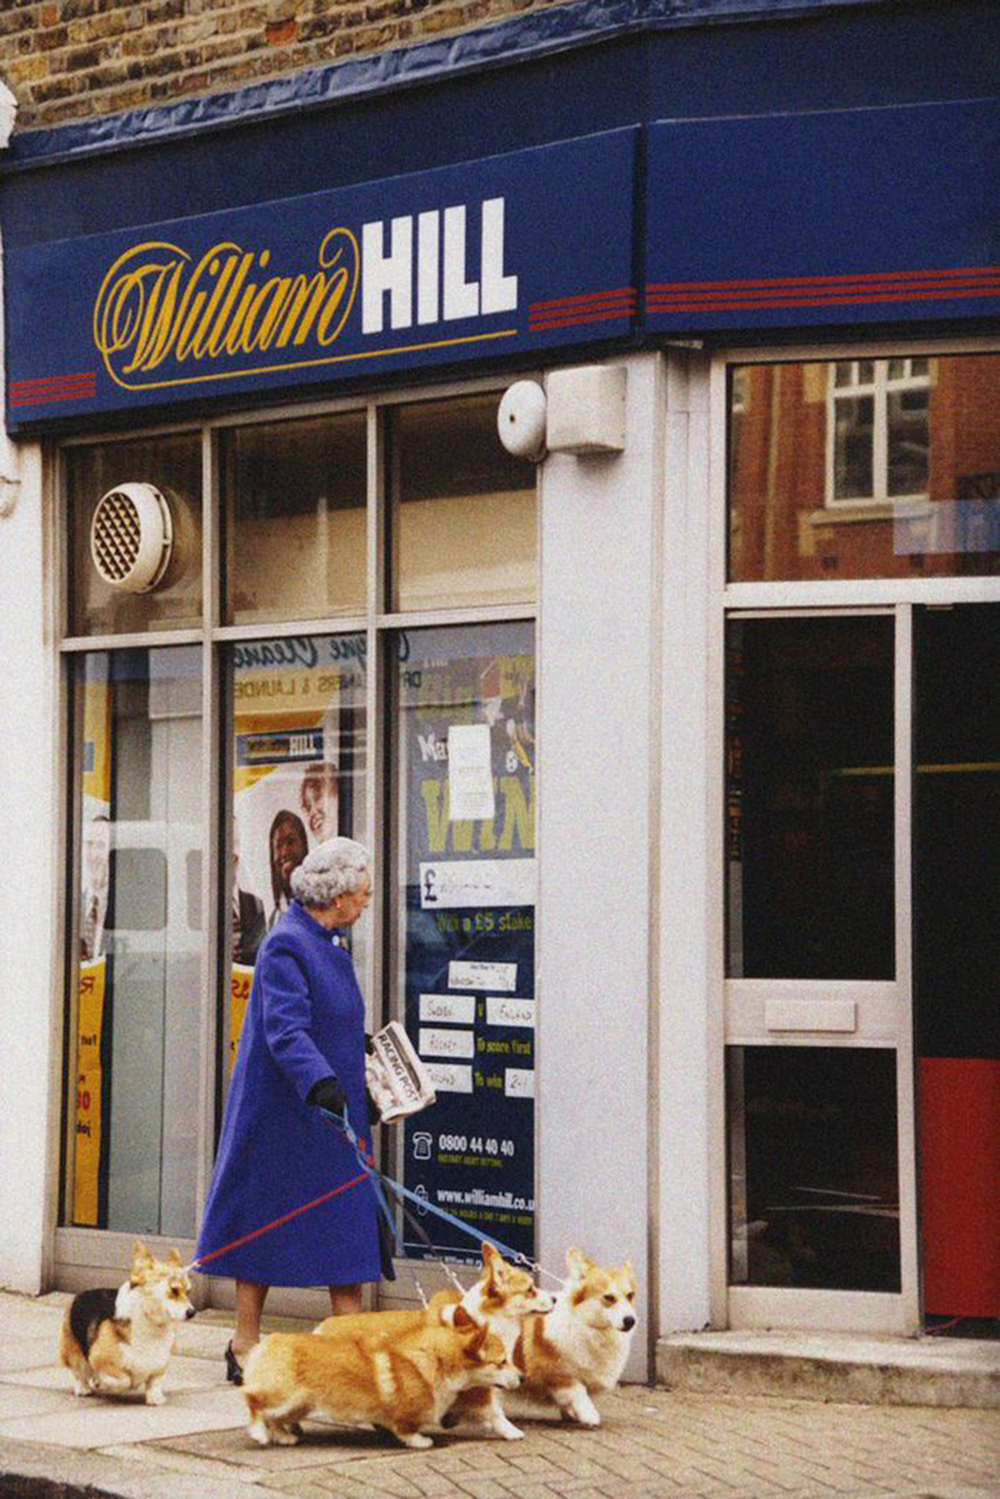 The Queen at William Hill